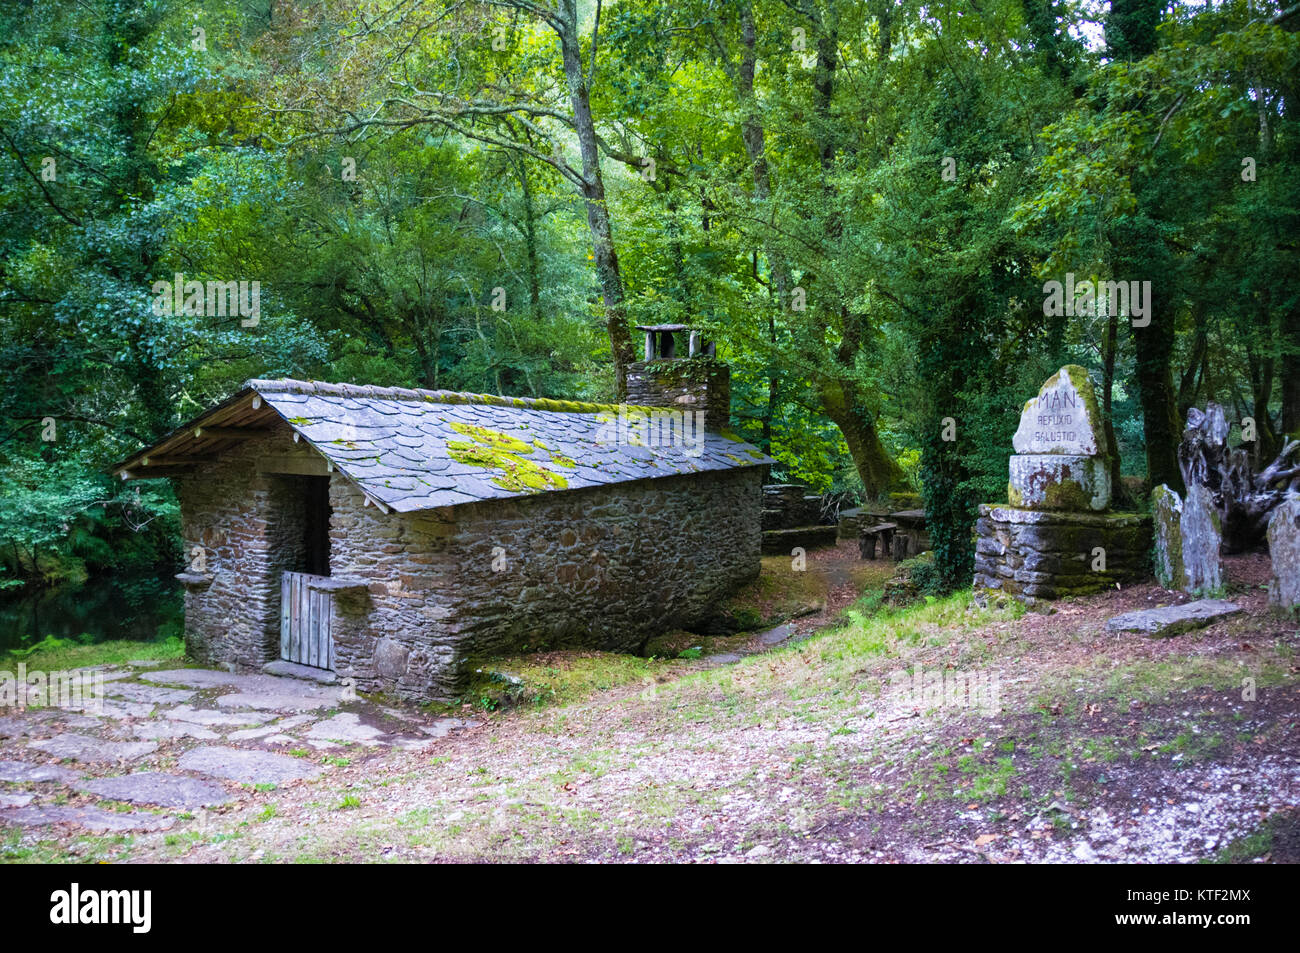 Shelter cabin at a dense Galician native forest by the river Sor. Ponte Segade, Lugo province, Galicia, Spain, Europe - Stock Image